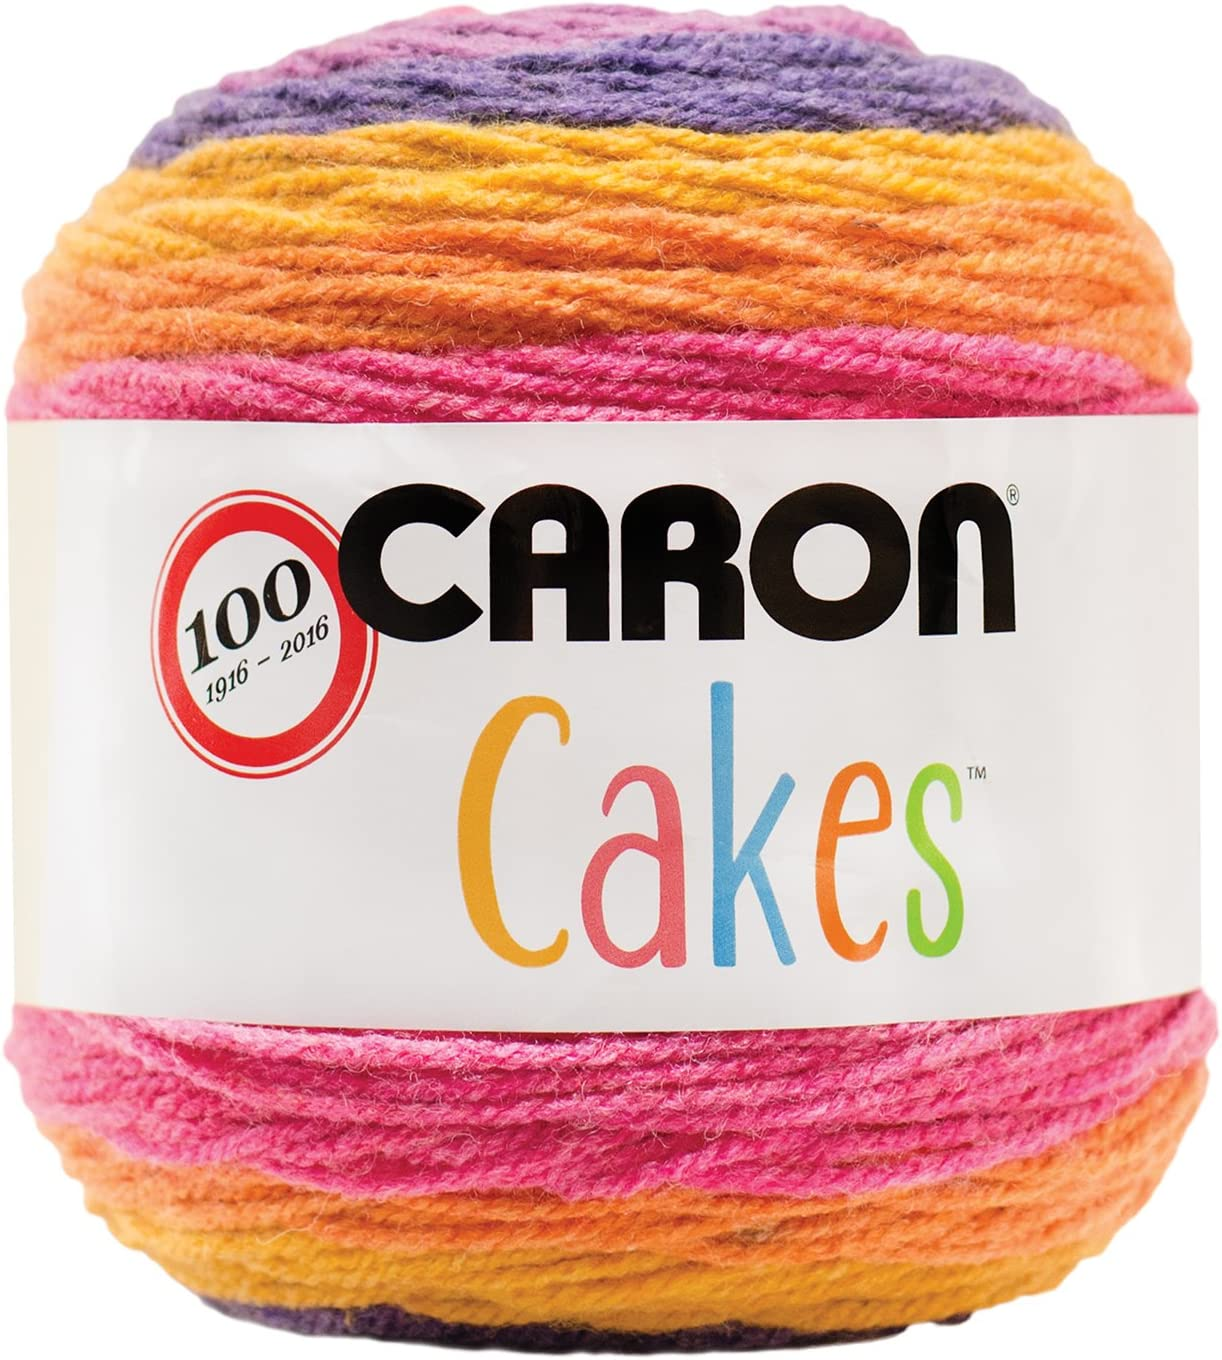 Cake by the Each Caron Cakes Self-Striping Yarn ~ PISTACHIO ~ 7.1 oz